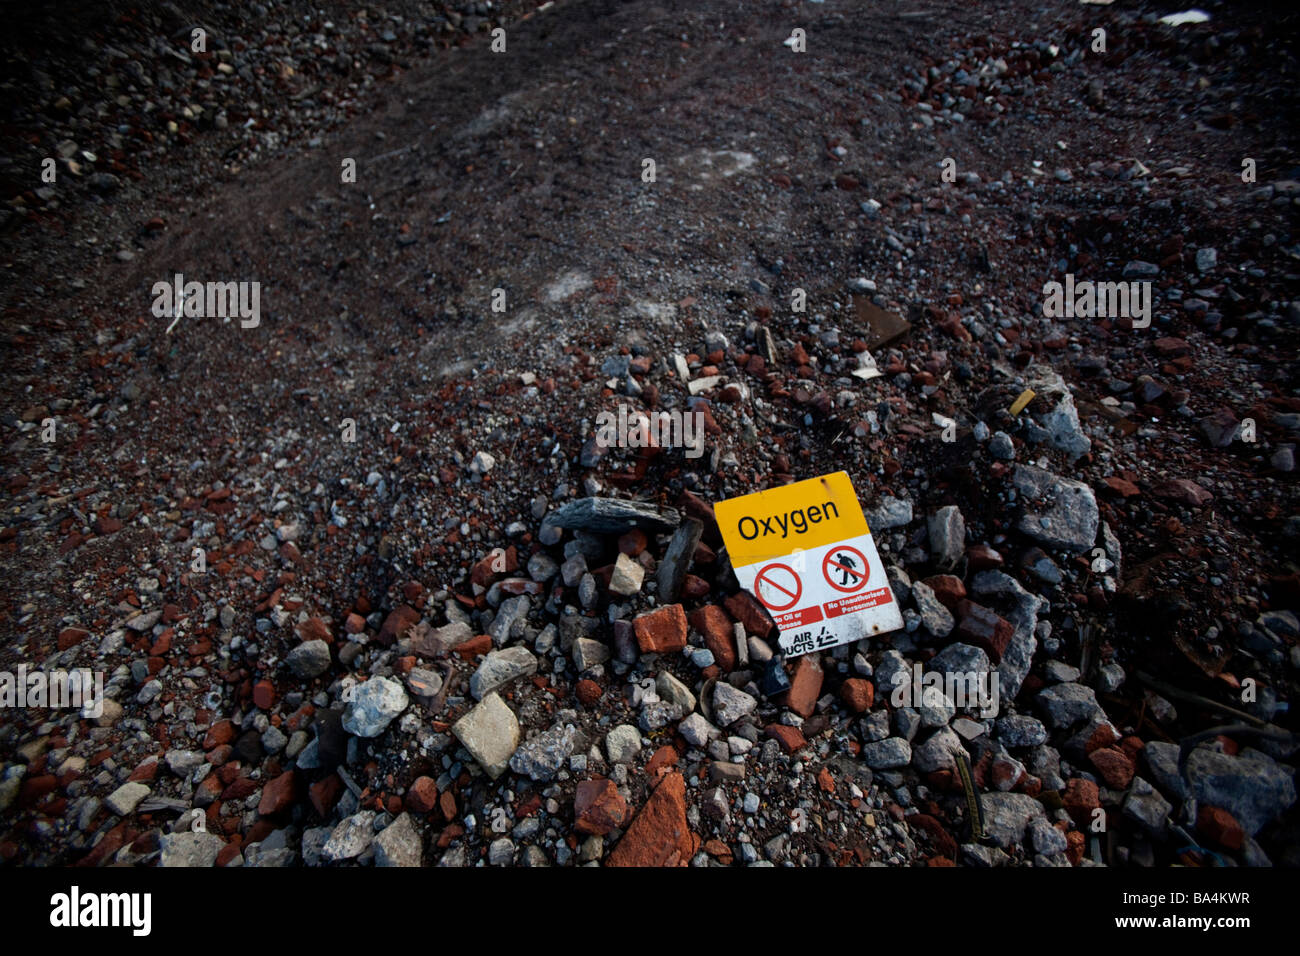 A oxygen warning sign in building rubble on a disused factory site - Stock Image